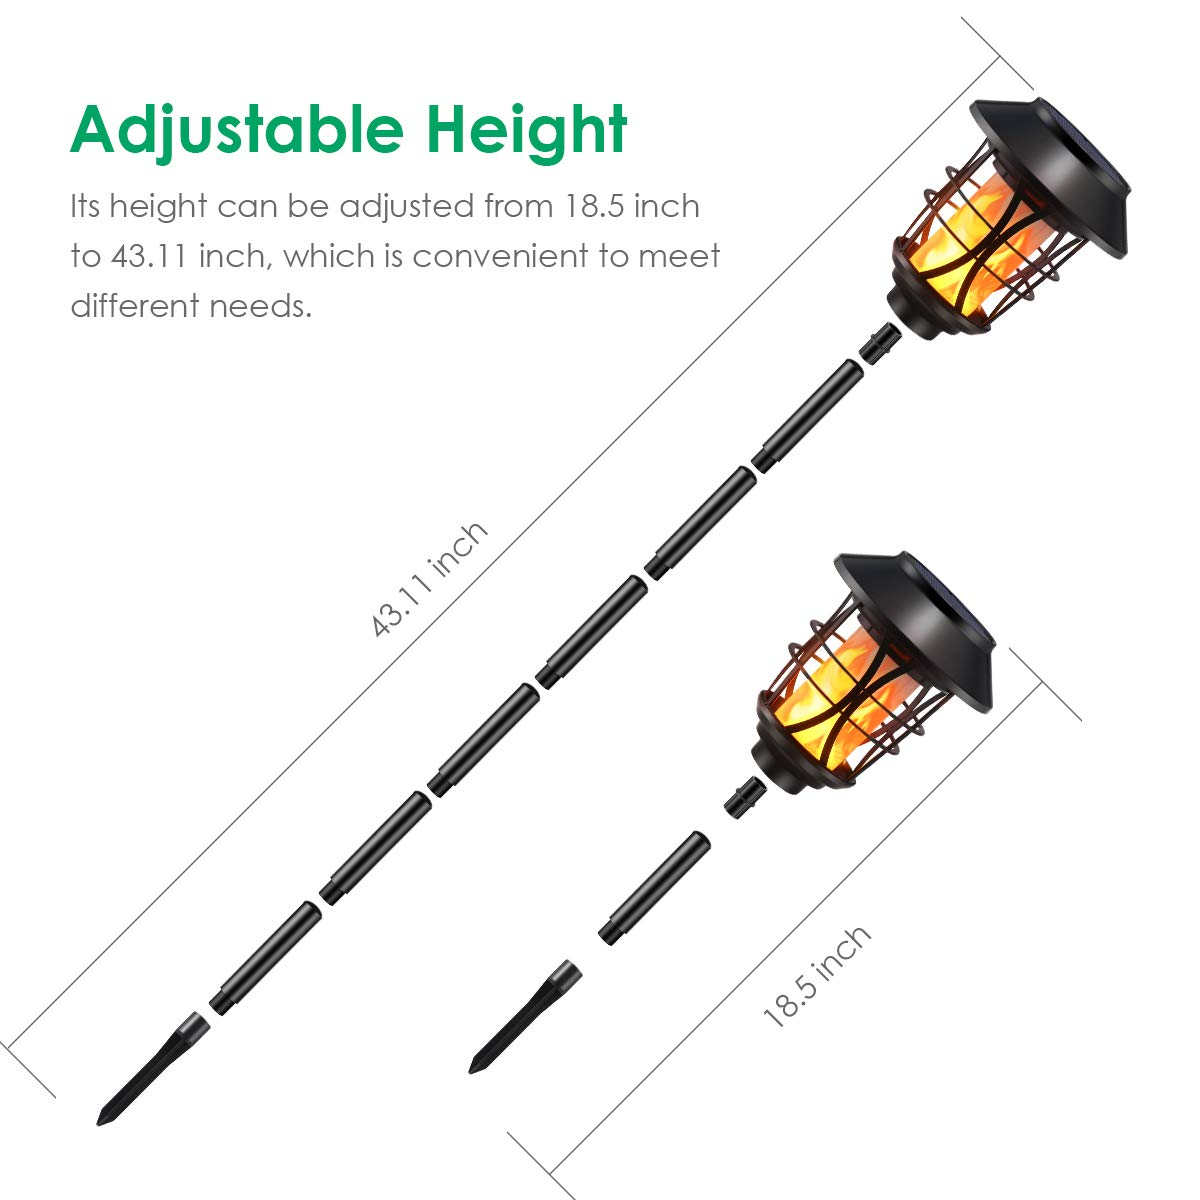 TomCare Solar Lights Metal Flickering Flame Solar Torches Lights Waterproof Outdoor Heavy Duty Lighting Solar Pathway Lights Landscape Lighting Dusk to Dawn Auto On/Off for Garden Patio Yard, 4 Pack by TomCare (Image #3)